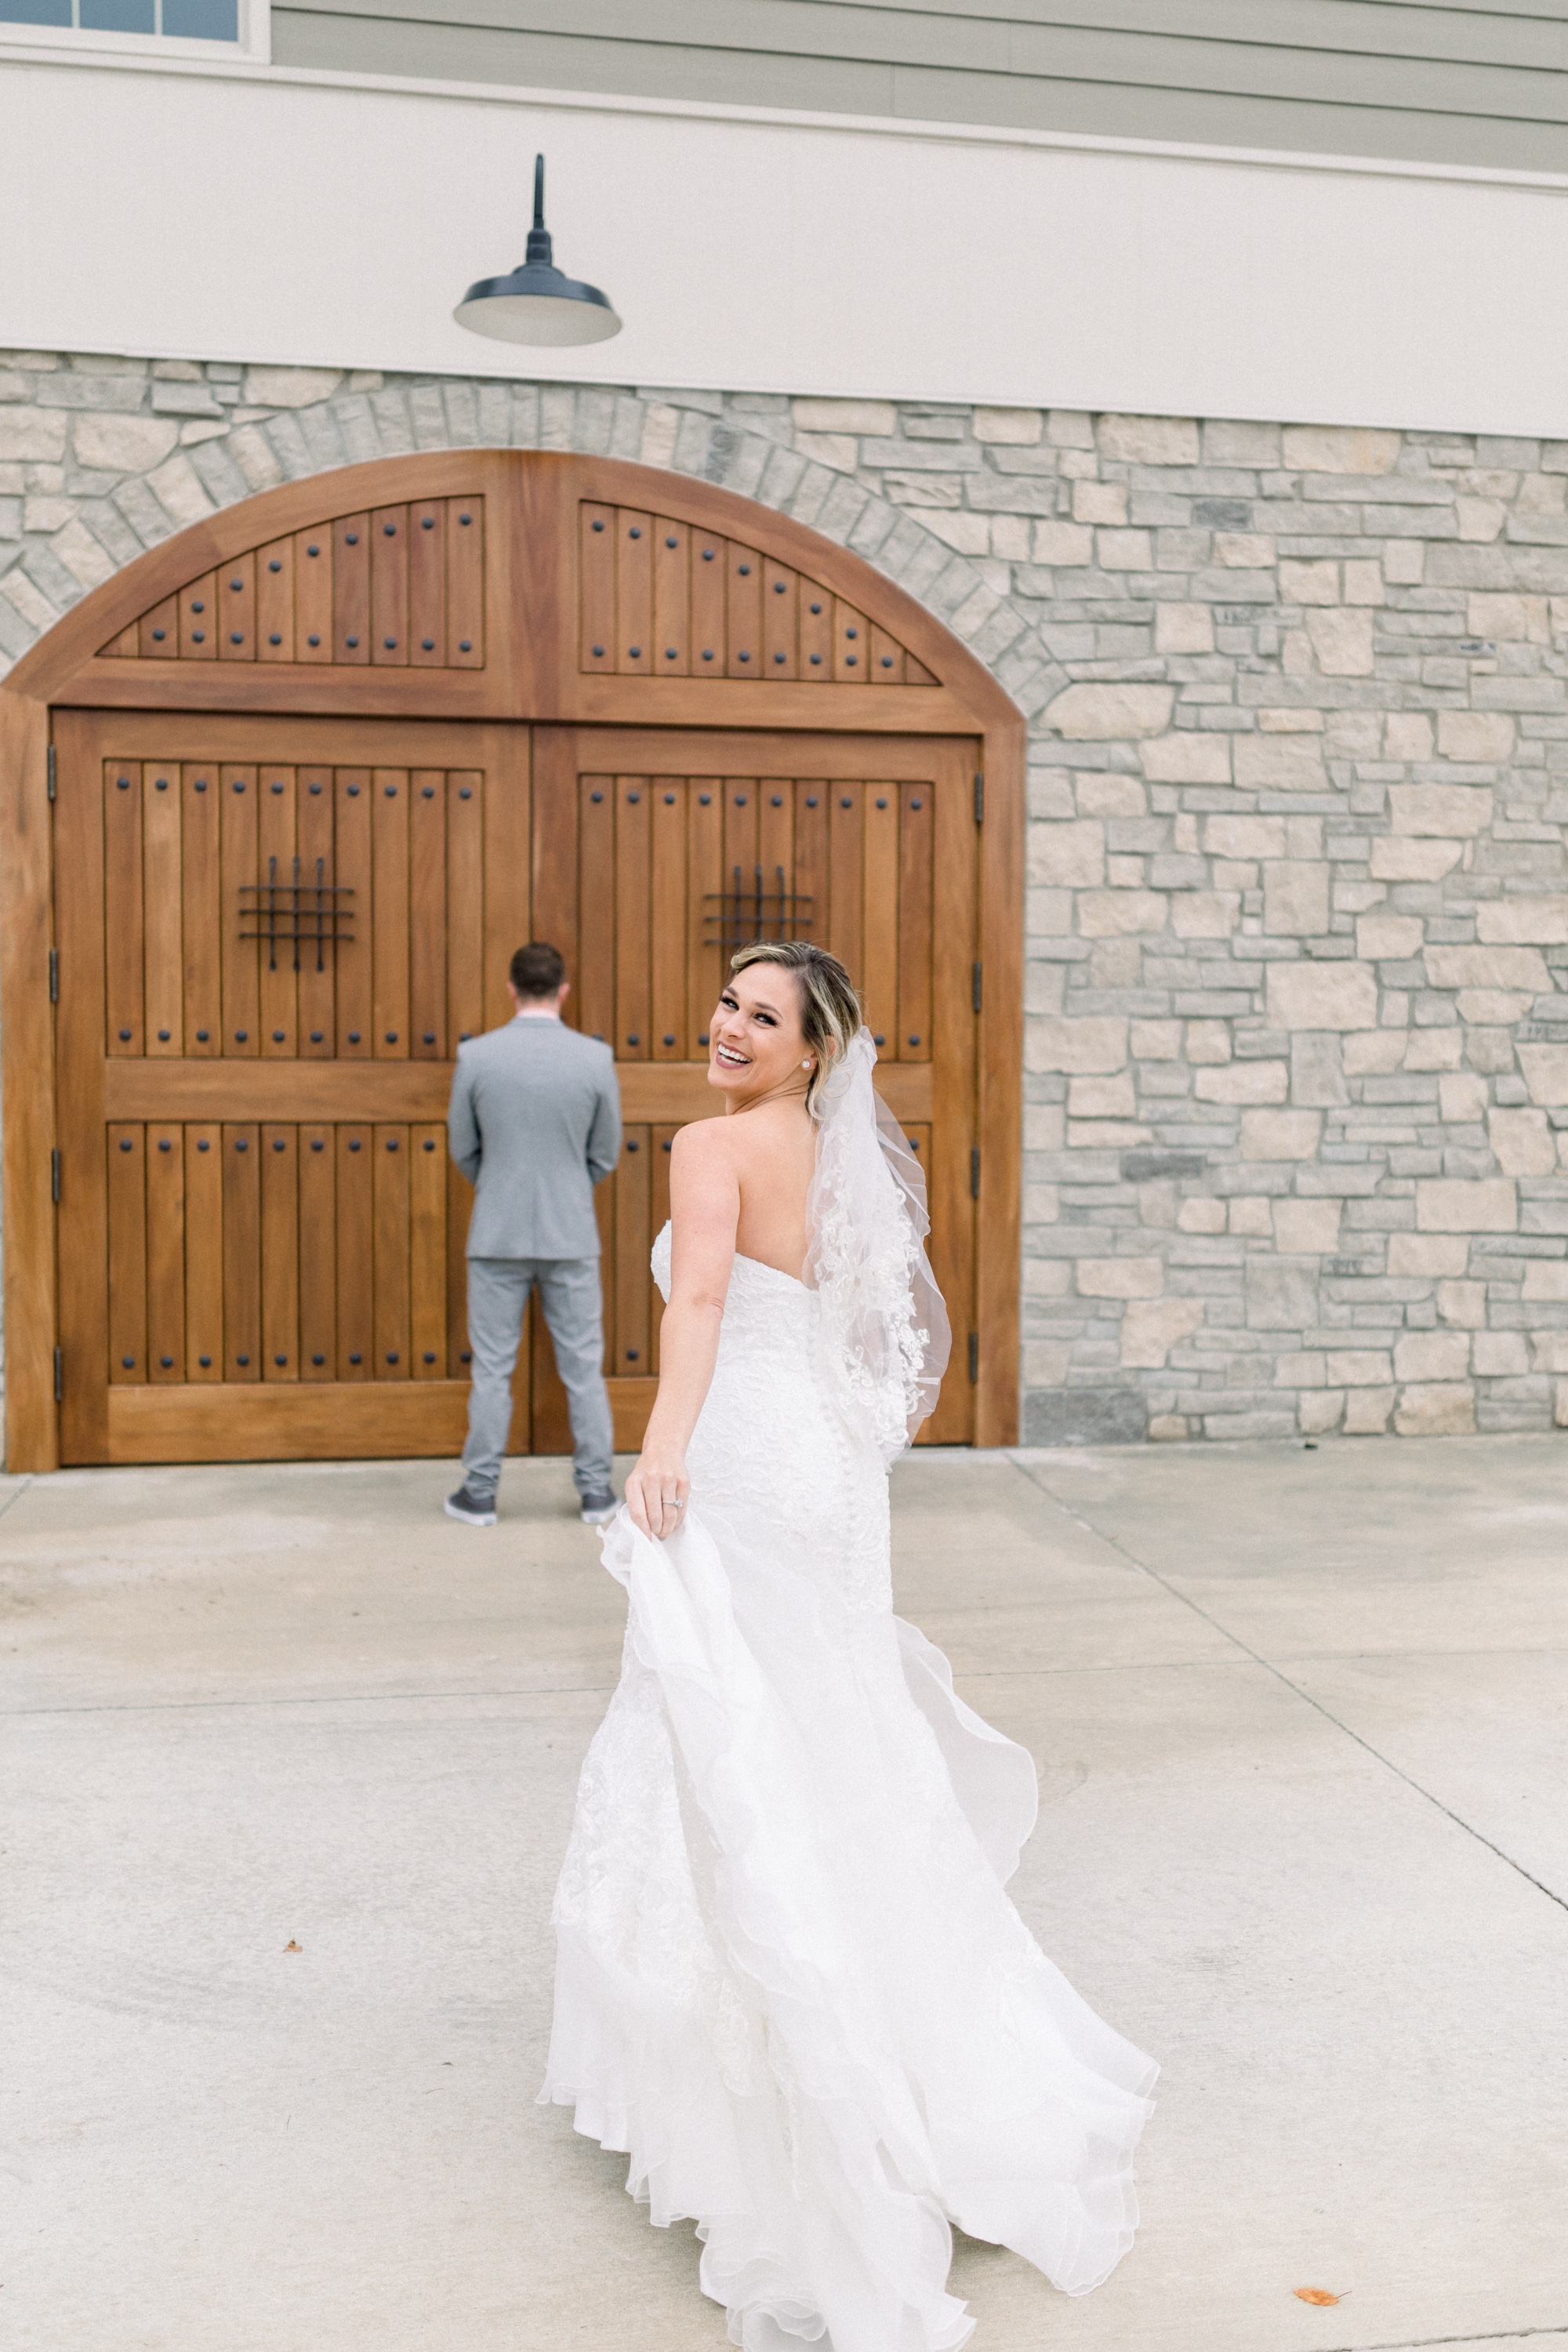 Baker wedding (130 of 850).jpg